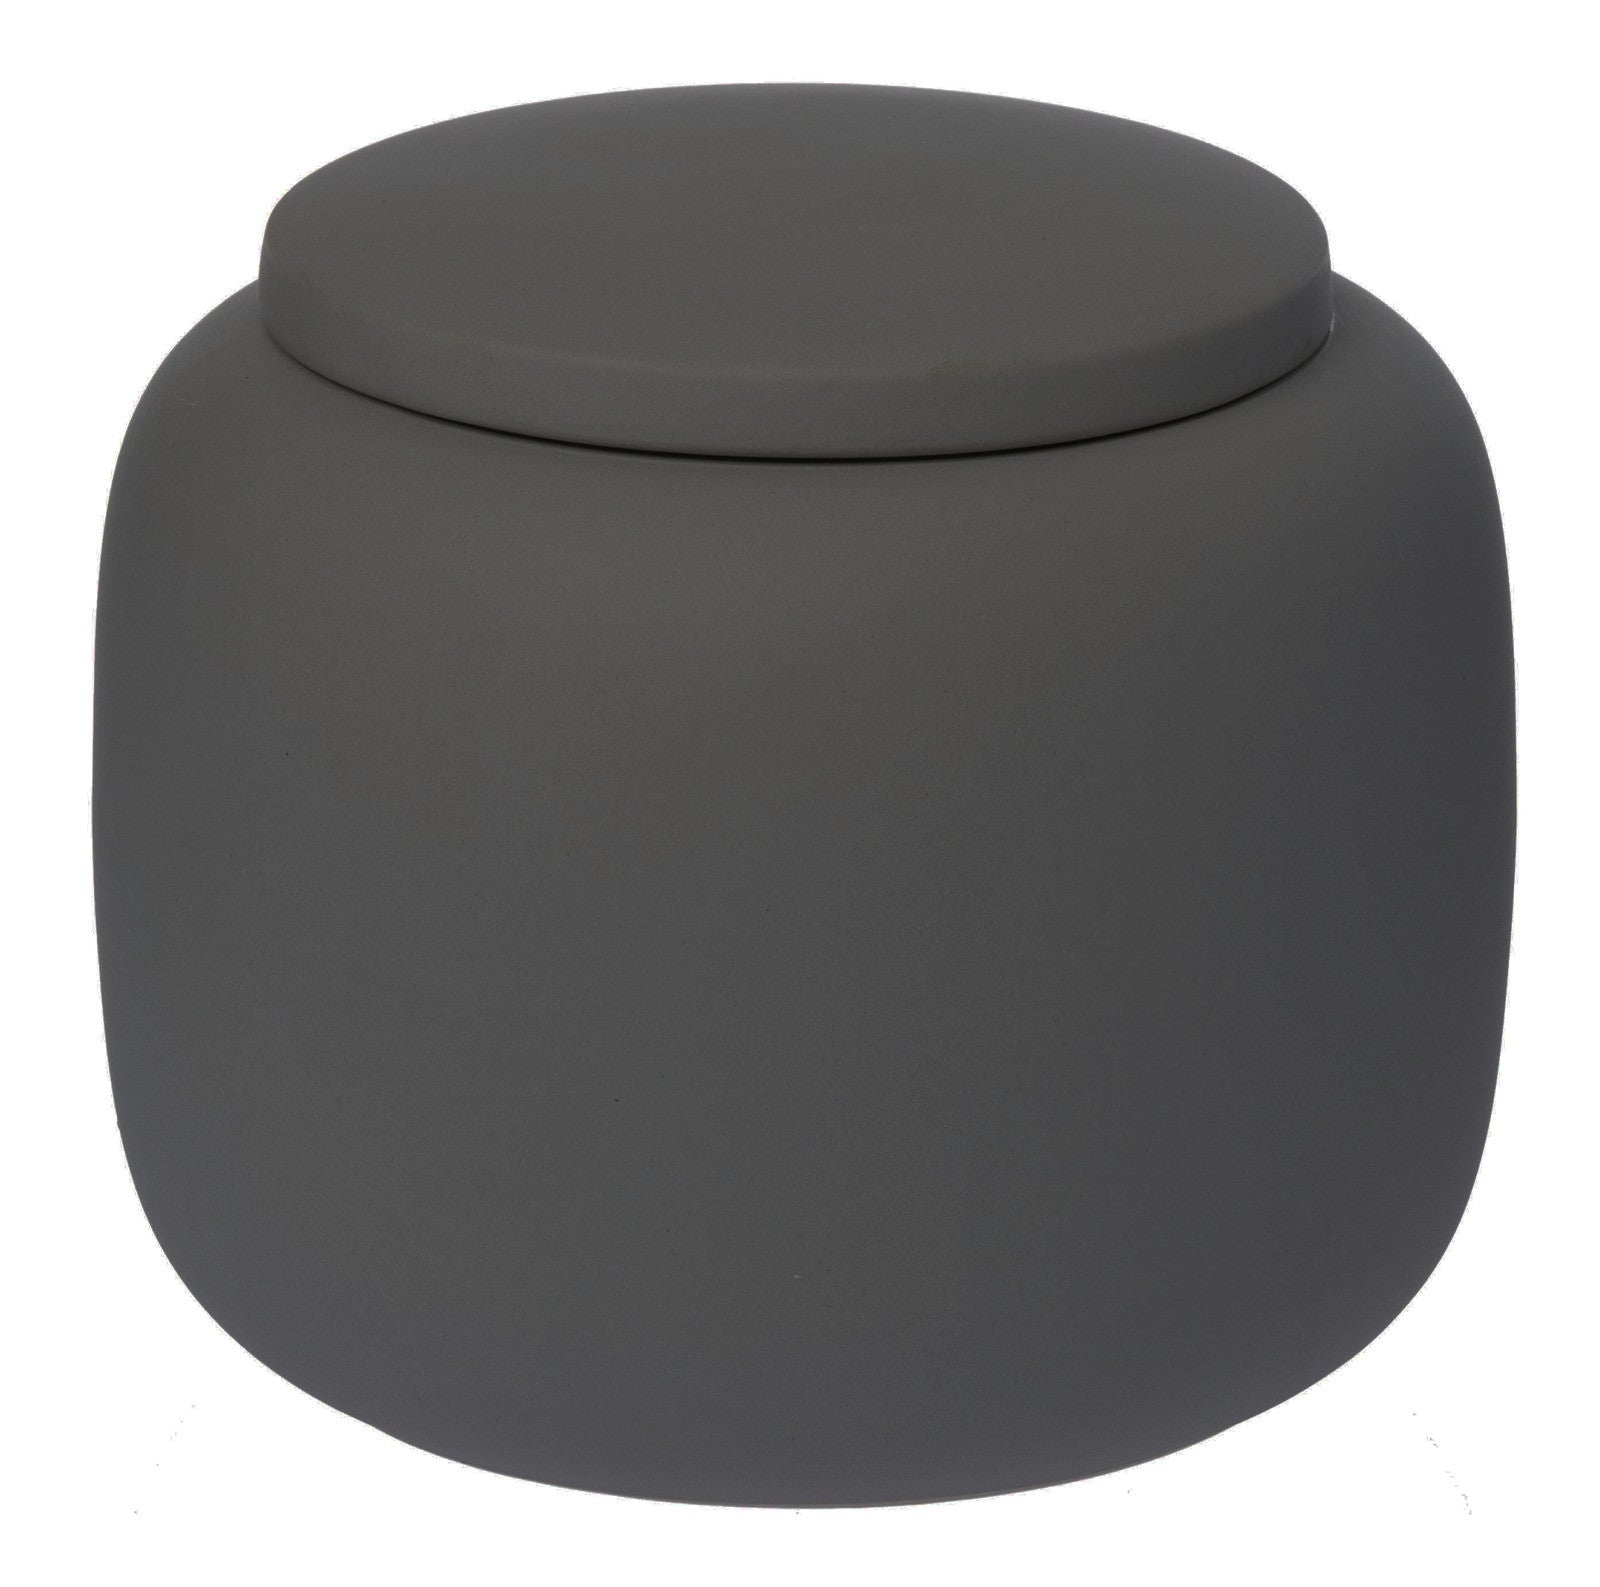 Matt Black Ceramic Jar